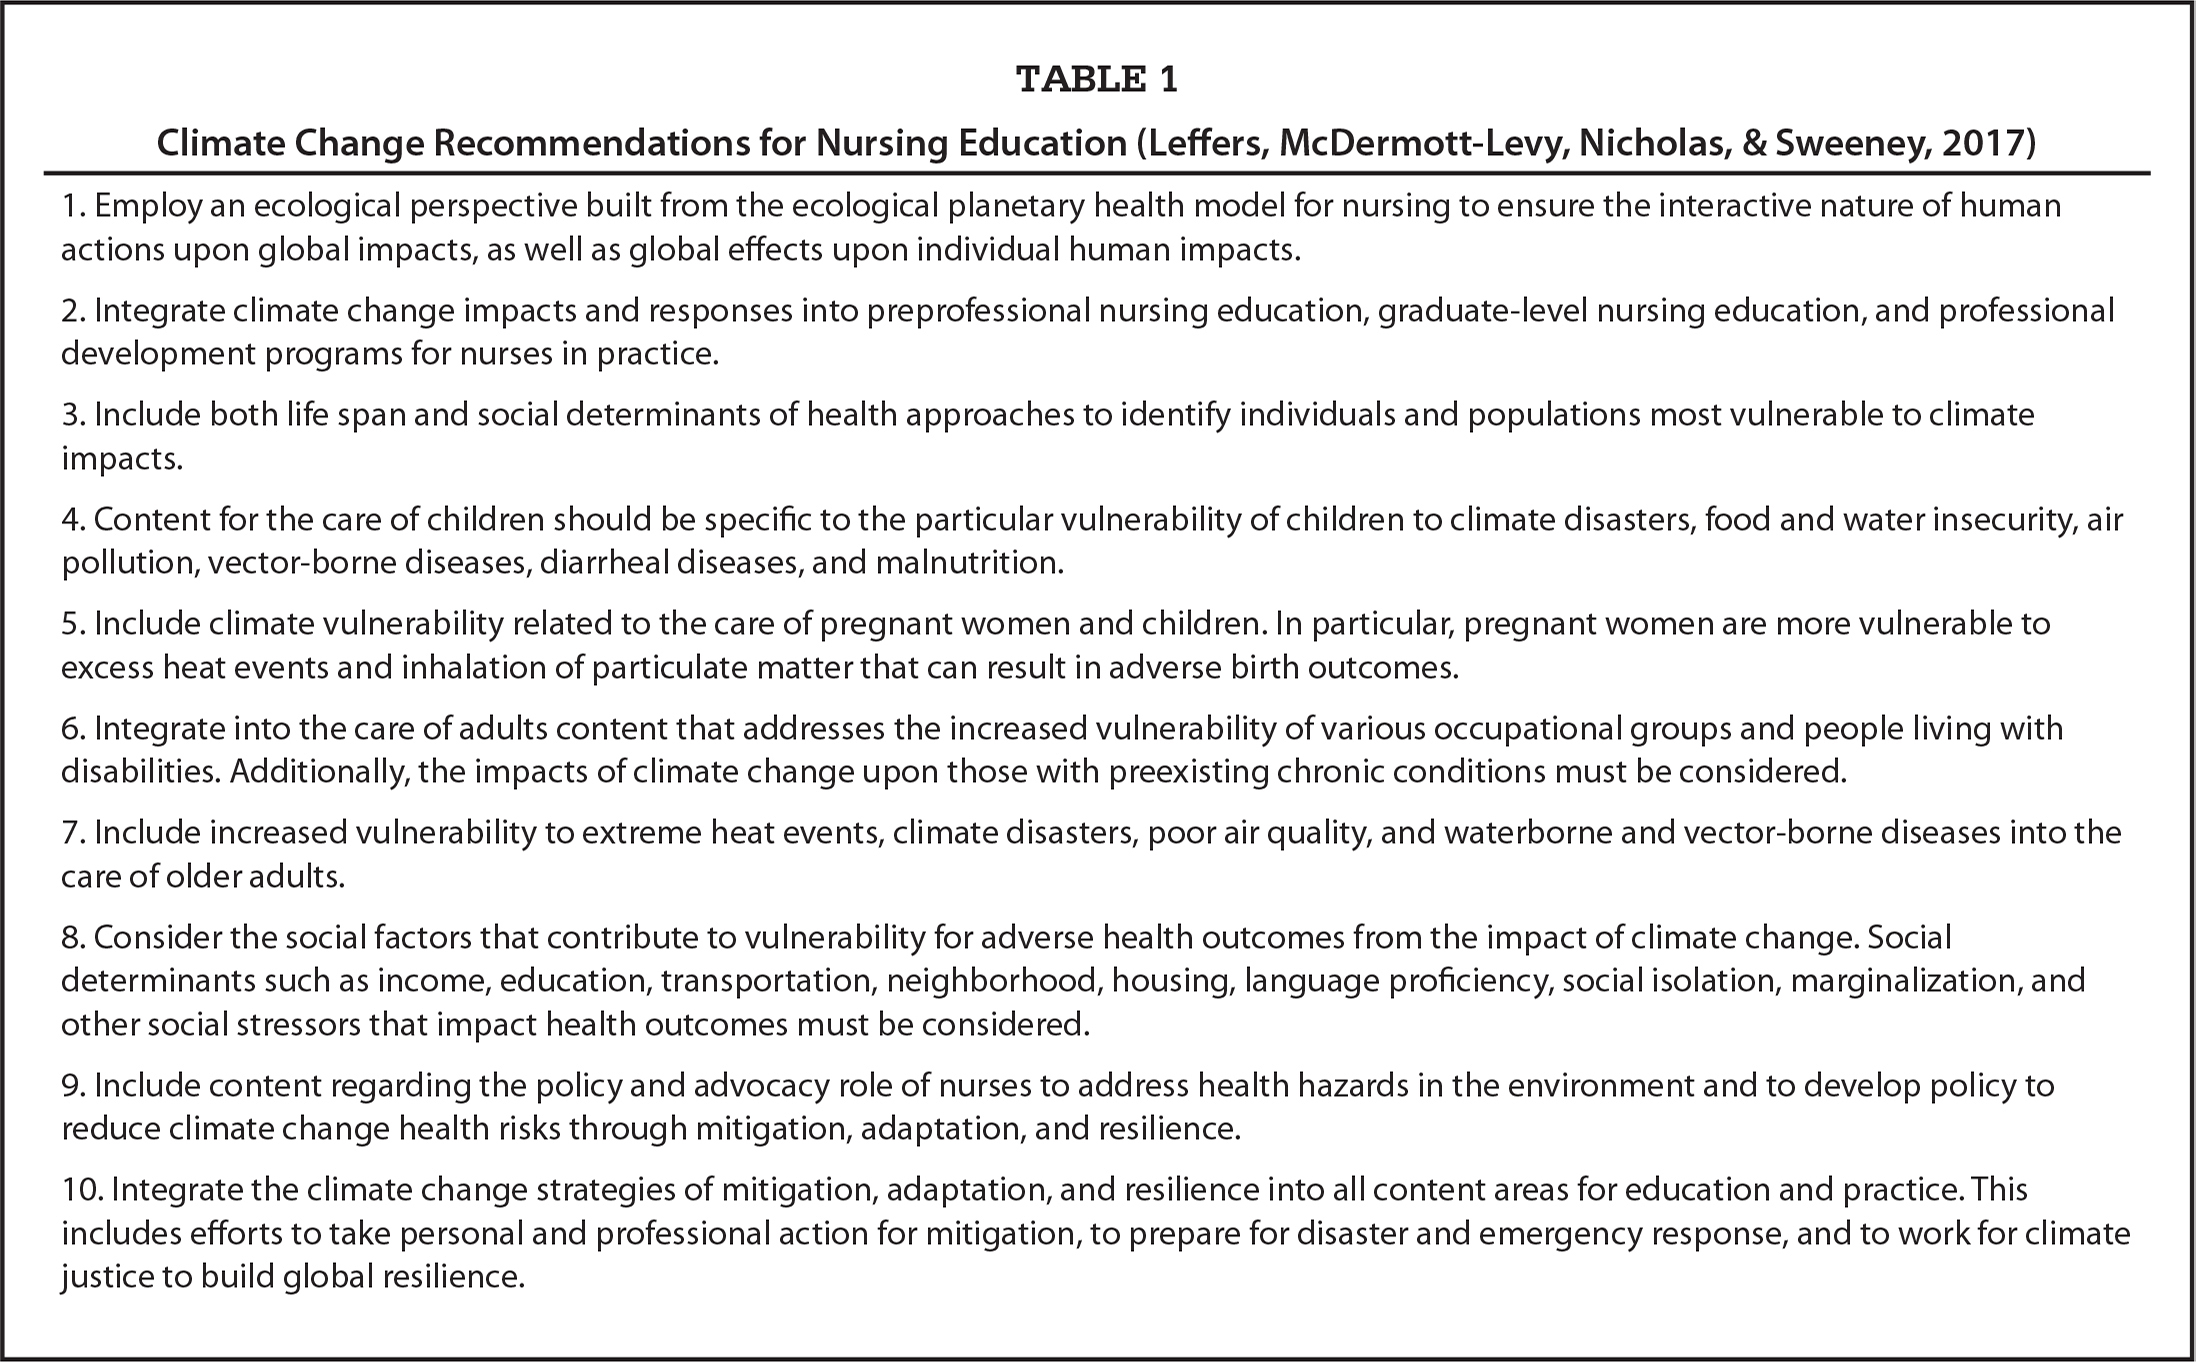 Climate Change Recommendations for Nursing Education (Leffers, McDermott-Levy, Nicholas, & Sweeney, 2017)